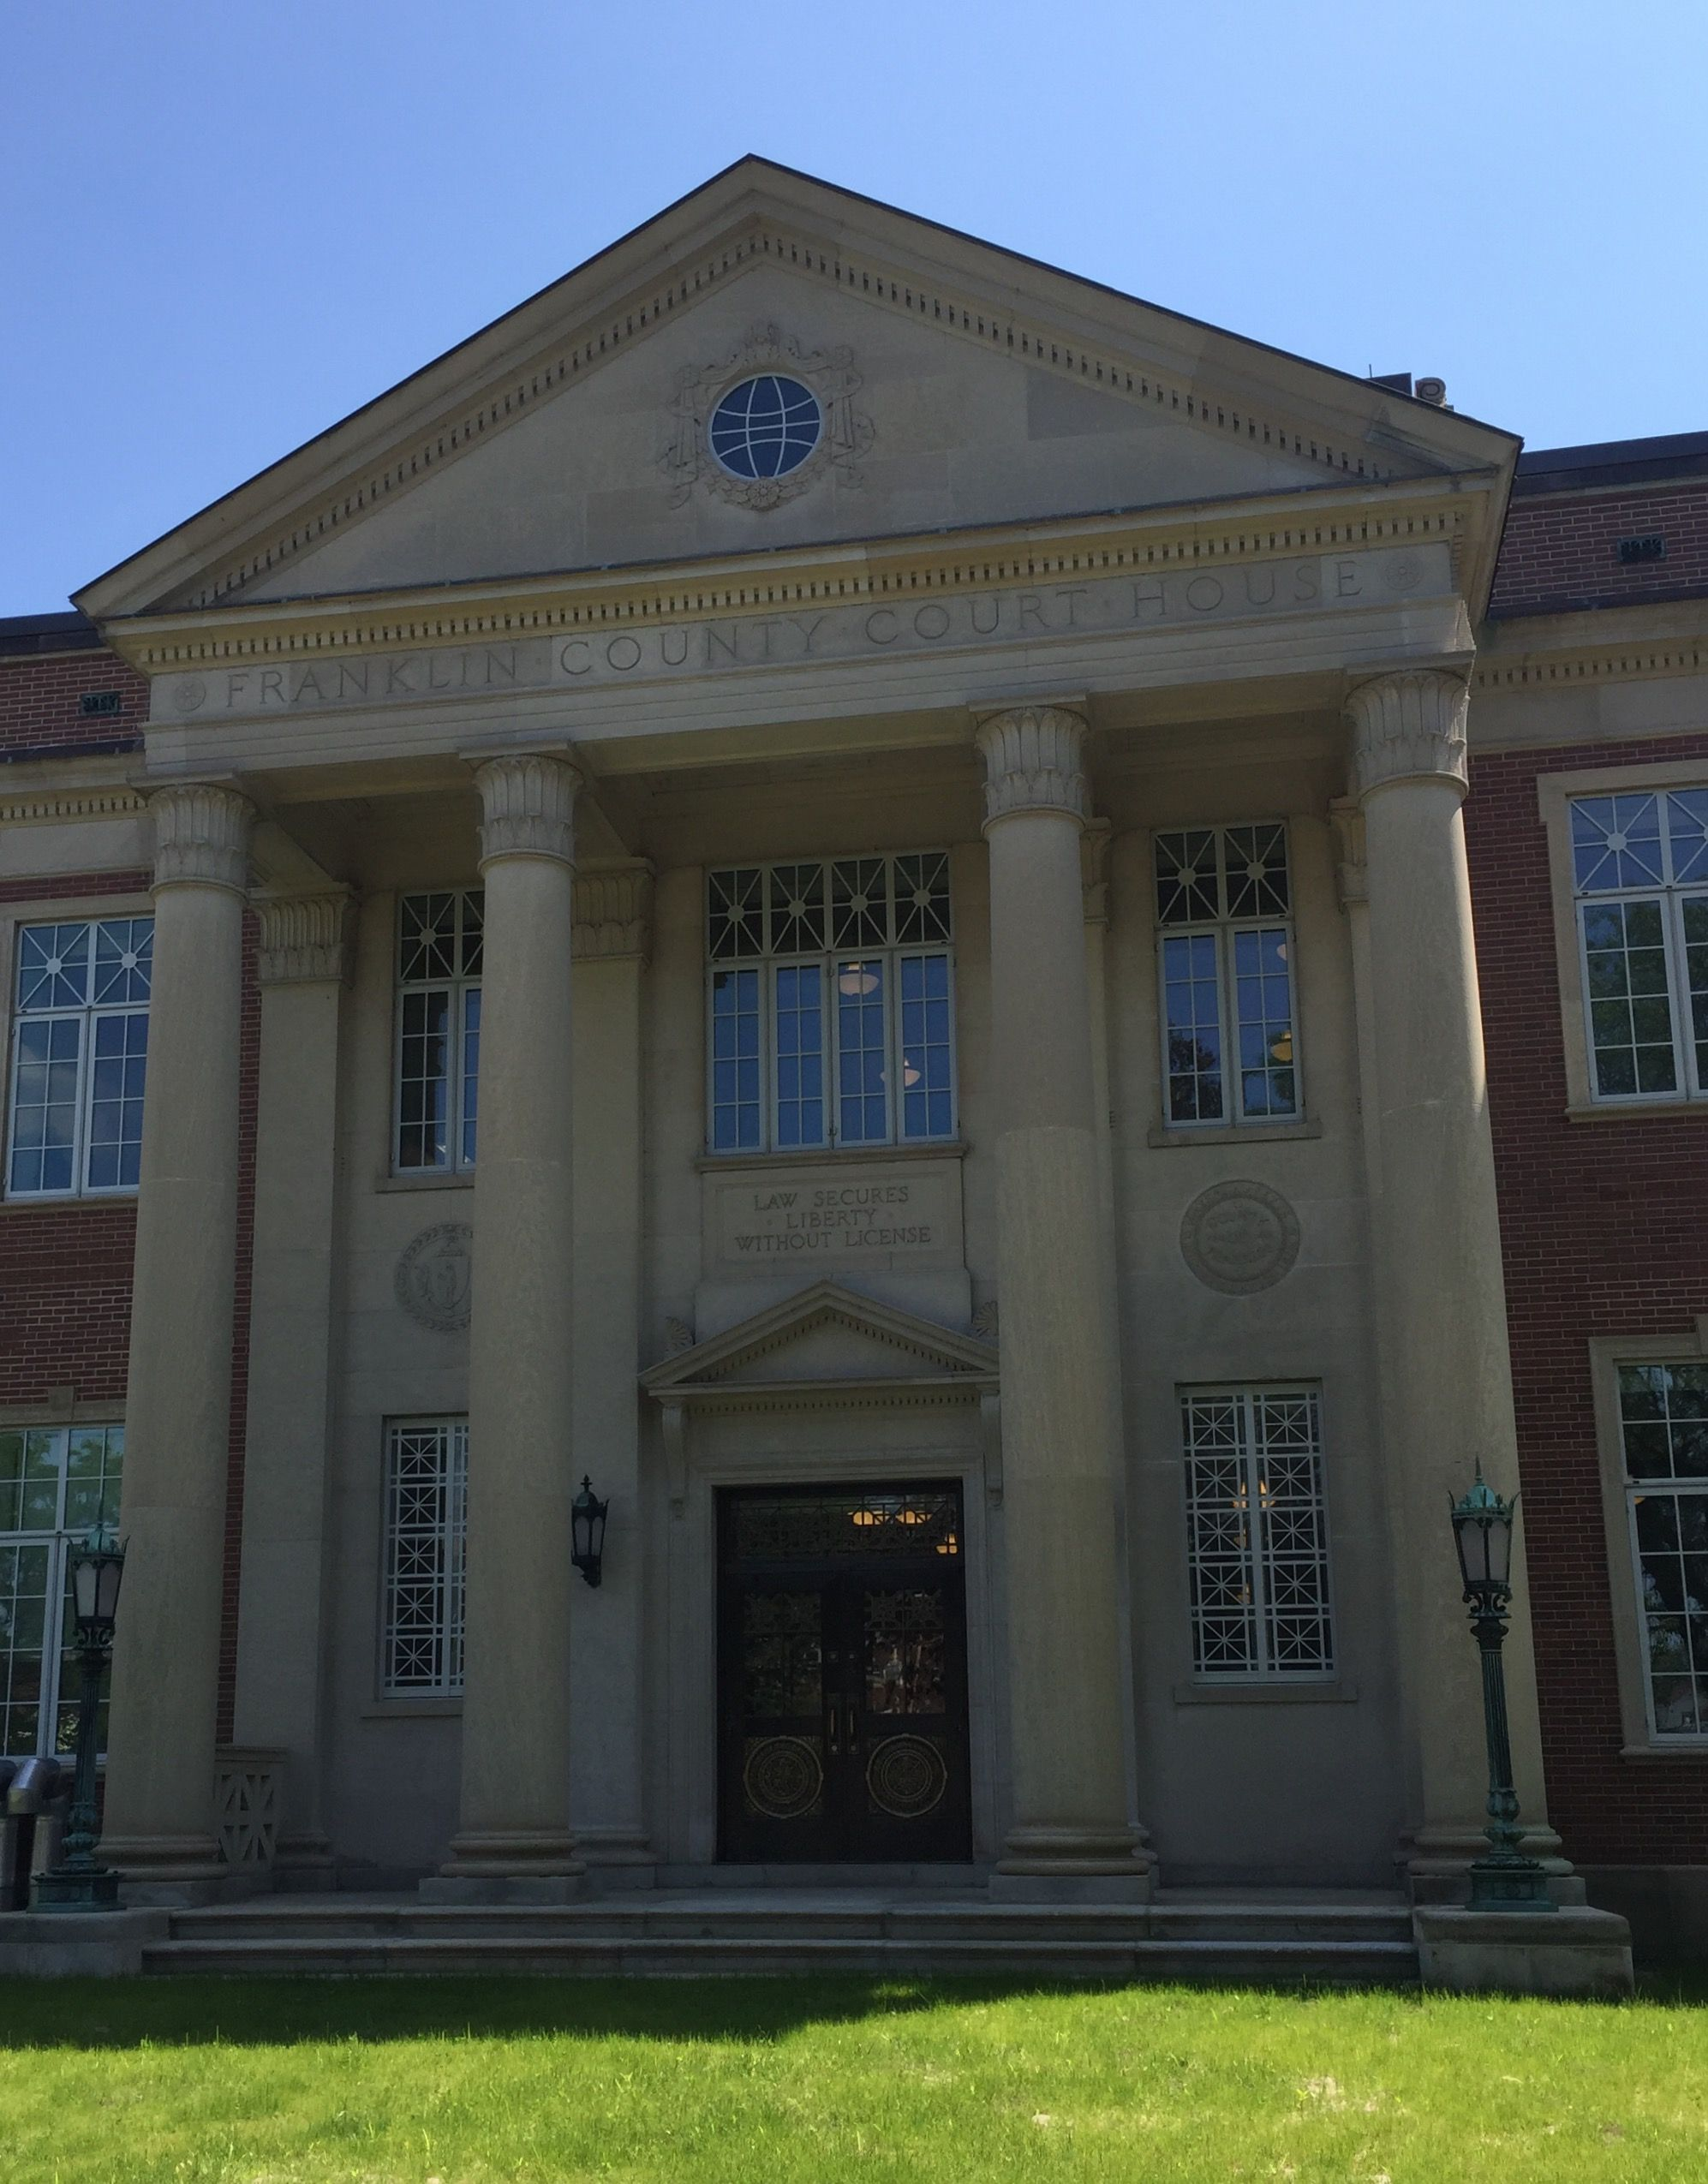 Entryway Franklin County Courthouse In Greenfield Massachusetts Paul Chandler June 2017 Courthouse House Styles Franklin County